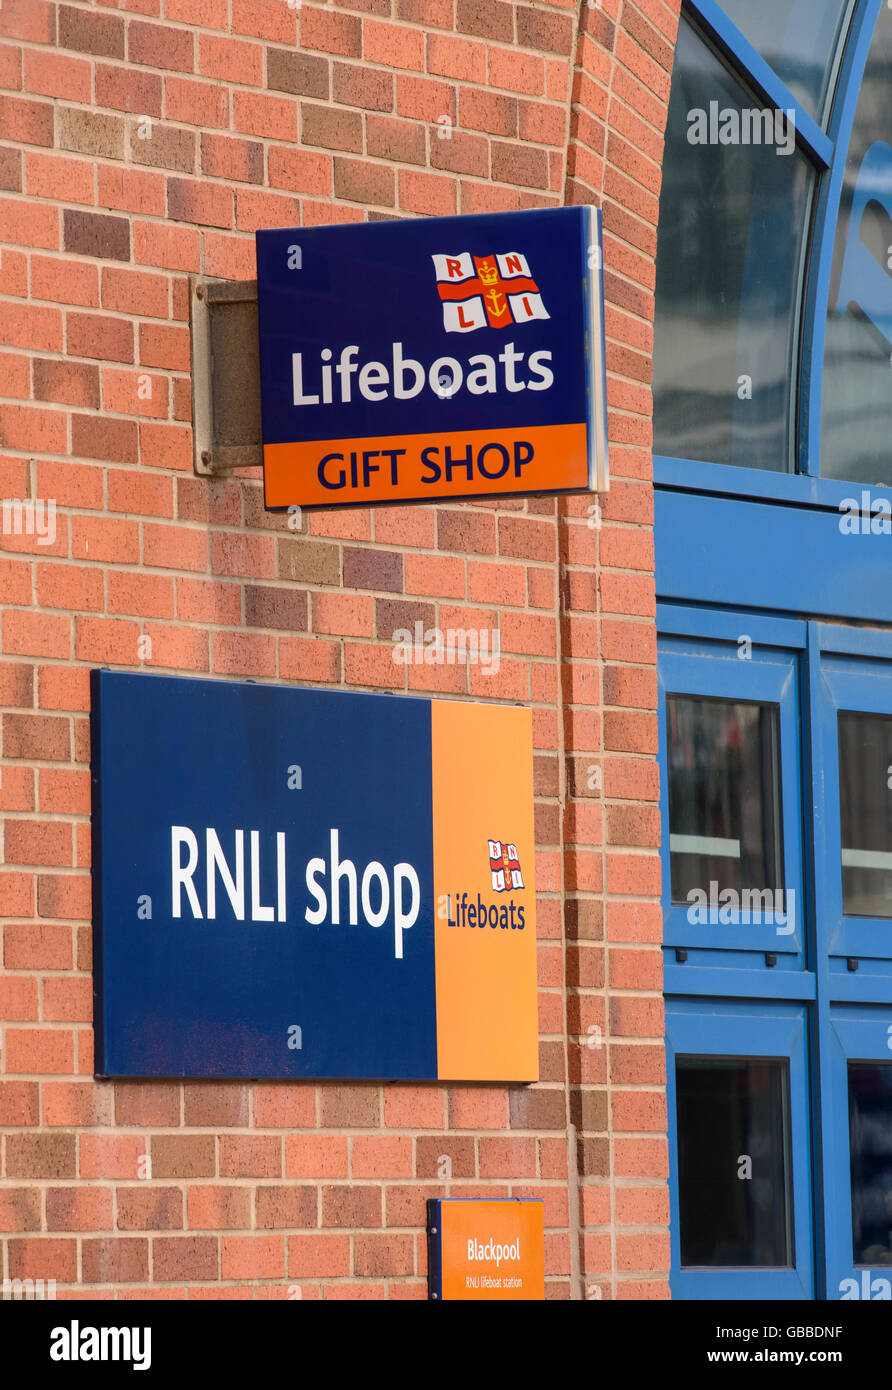 RNLI Lifeboats Shop sign outside the Lifeboat Station on the seafront in Blackpool, Lancashire, UK - Stock Image